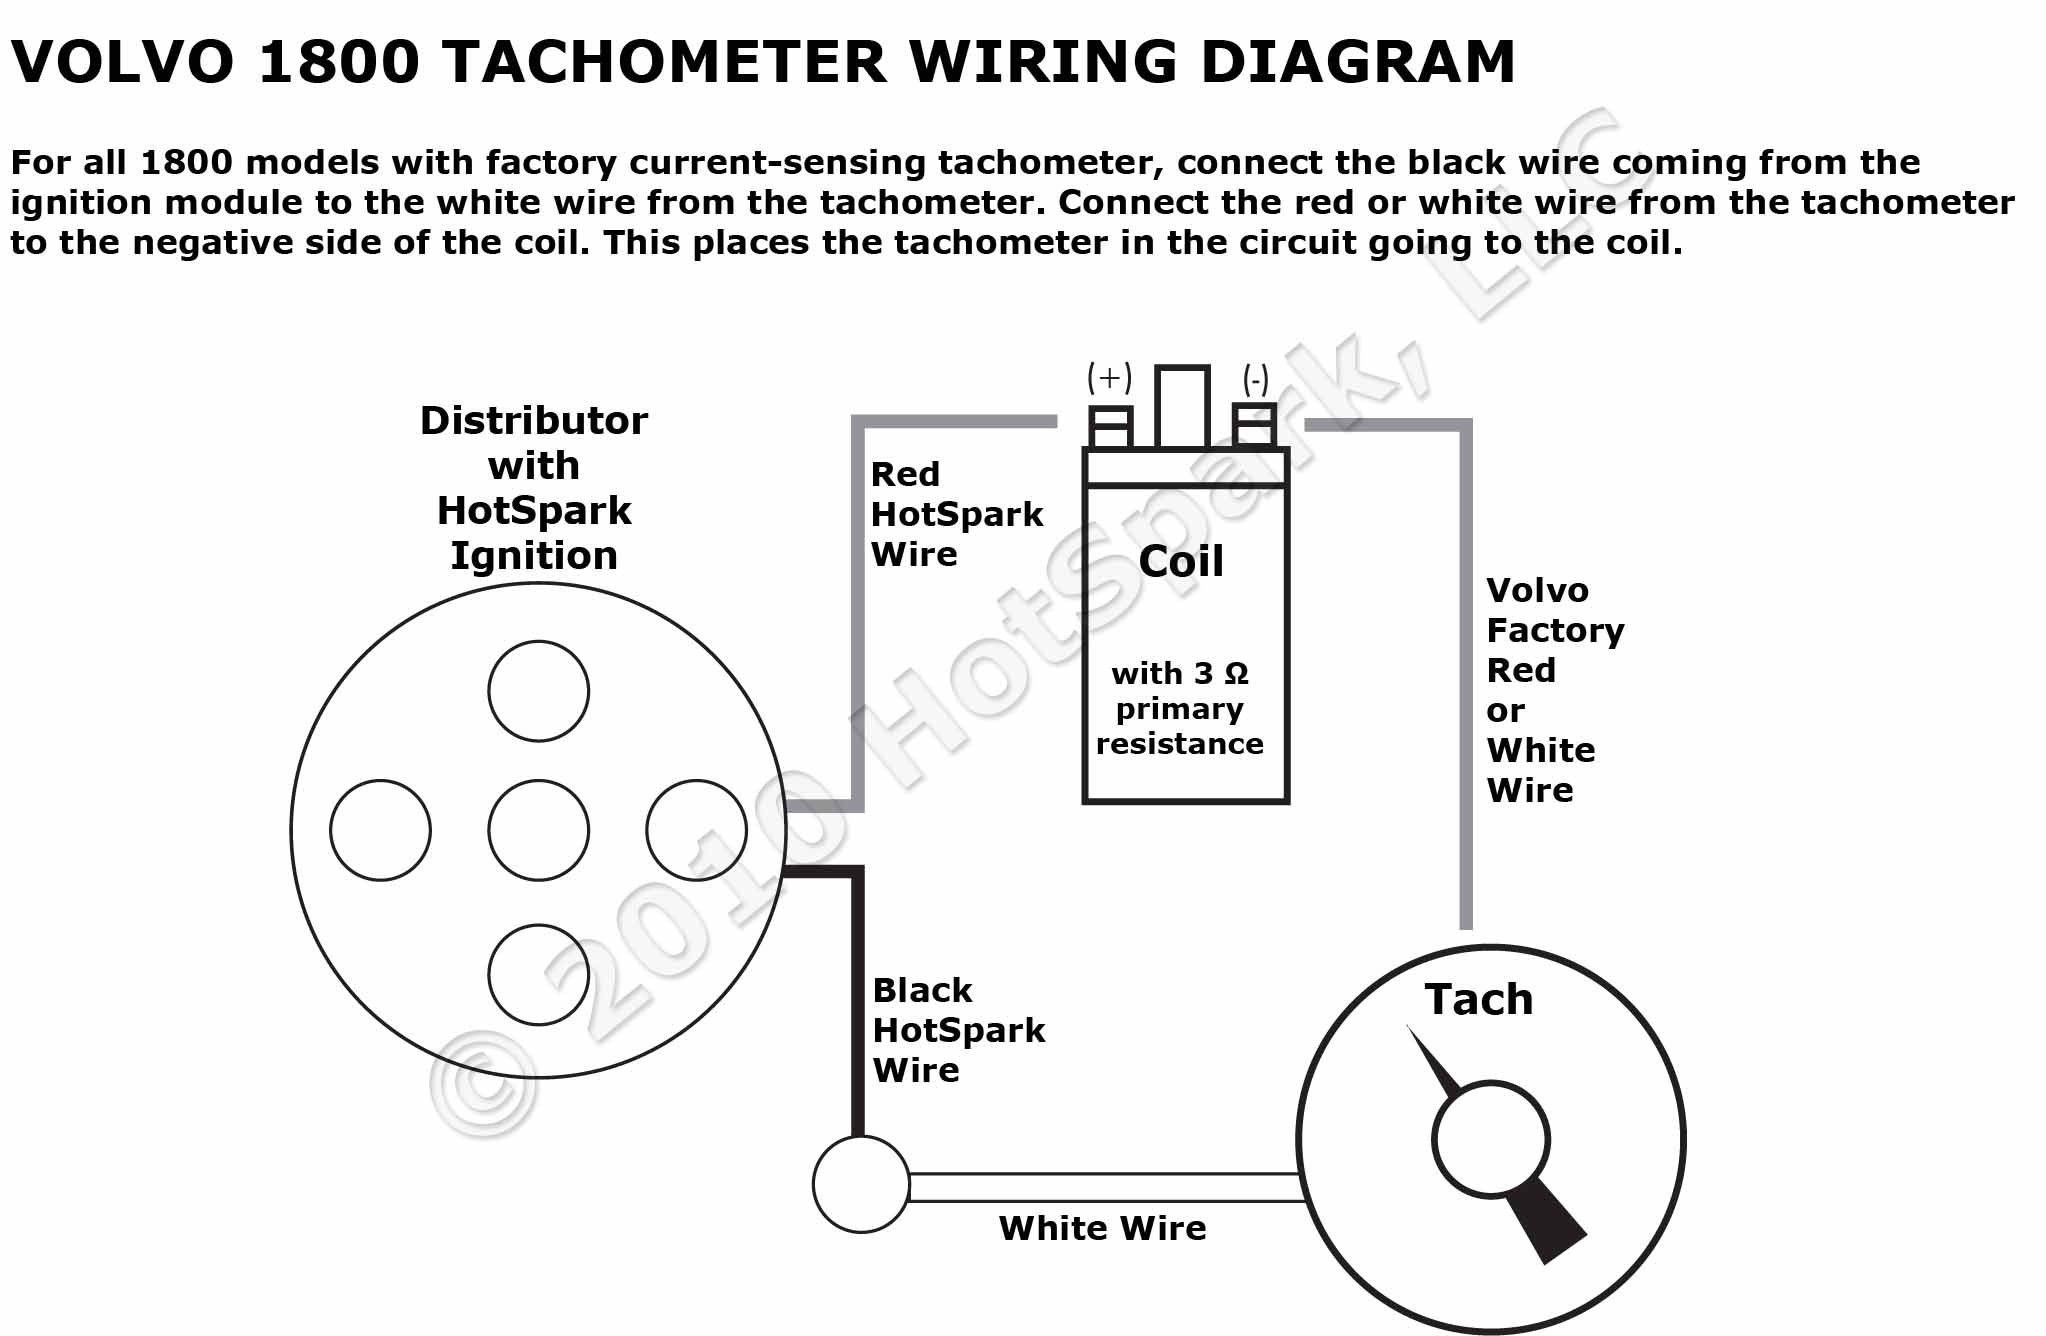 alternator with tach wiring diagram pin by trudy mccoy on diagram sample in 2019 diagram  online  pin by trudy mccoy on diagram sample in